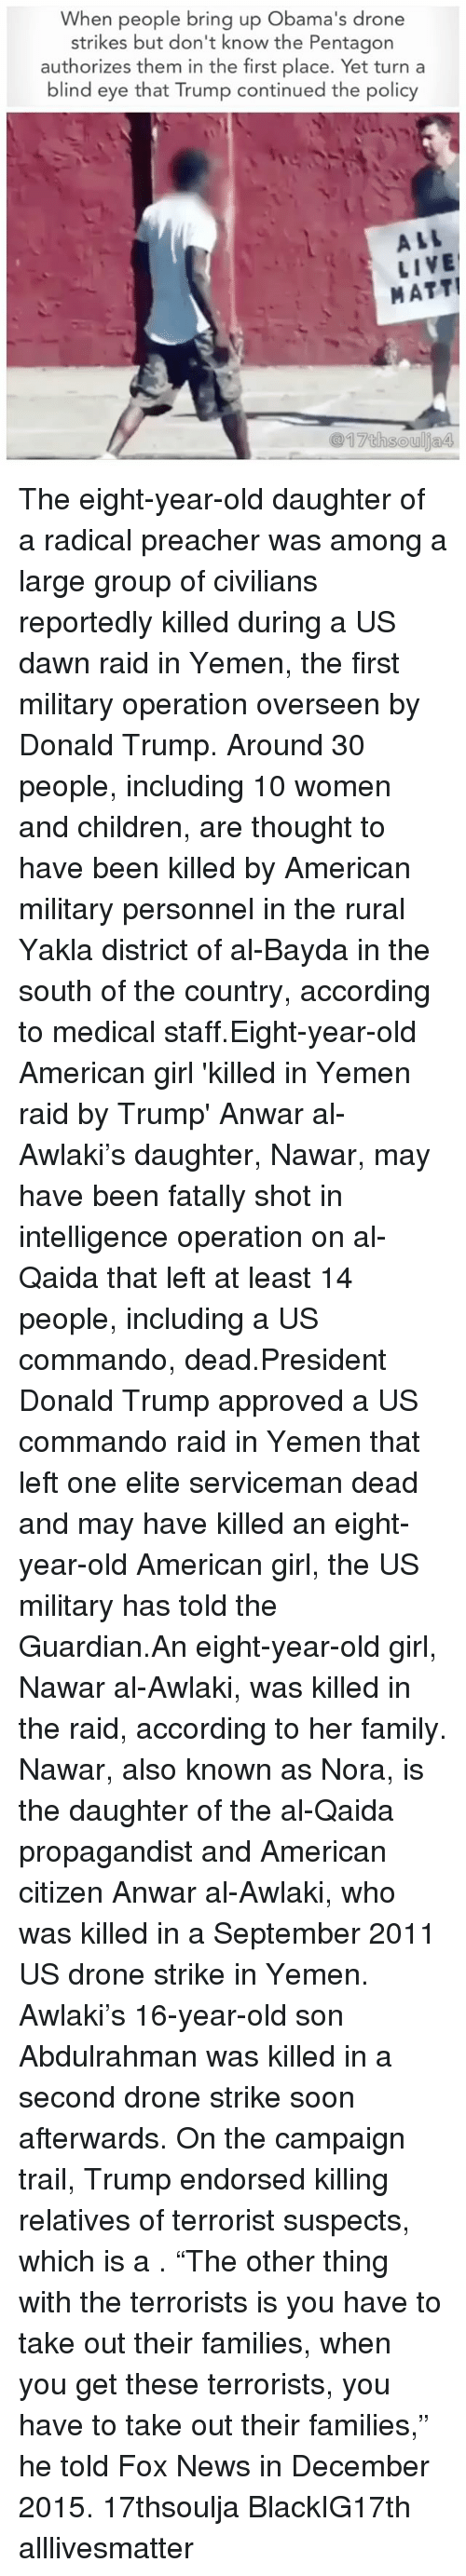 "accordance: When people bring up Obama's drone  strikes but don't know the Pentagon  authorizes them in the first place. Yet turn a  blind eye that Trump continued the policy  ALL  LIVE  MATT! The eight-year-old daughter of a radical preacher was among a large group of civilians reportedly killed during a US dawn raid in Yemen, the first military operation overseen by Donald Trump. Around 30 people, including 10 women and children, are thought to have been killed by American military personnel in the rural Yakla district of al-Bayda in the south of the country, according to medical staff.Eight-year-old American girl 'killed in Yemen raid <approved >by Trump' Anwar al-Awlaki's daughter, Nawar, may have been fatally shot in intelligence operation on al-Qaida that left at least 14 people, including a US commando, dead.President Donald Trump <personally >approved a US commando raid in Yemen that left one elite serviceman dead and may have killed an eight-year-old American girl, the US military has told the Guardian.An eight-year-old girl, Nawar al-Awlaki, was killed in the raid, according to her family. Nawar, also known as Nora, is the daughter of the al-Qaida propagandist and American citizen Anwar al-Awlaki, who was killed in a September 2011 US drone strike in Yemen. Awlaki's 16-year-old son Abdulrahman was killed in a second drone strike soon afterwards. On the campaign trail, Trump endorsed killing relatives of terrorist suspects, which is a <war crime>. ""The other thing with the terrorists is you have to take out their families, when you get these terrorists, you have to take out their families,"" he told Fox News in December 2015. 17thsoulja BlackIG17th alllivesmatter"